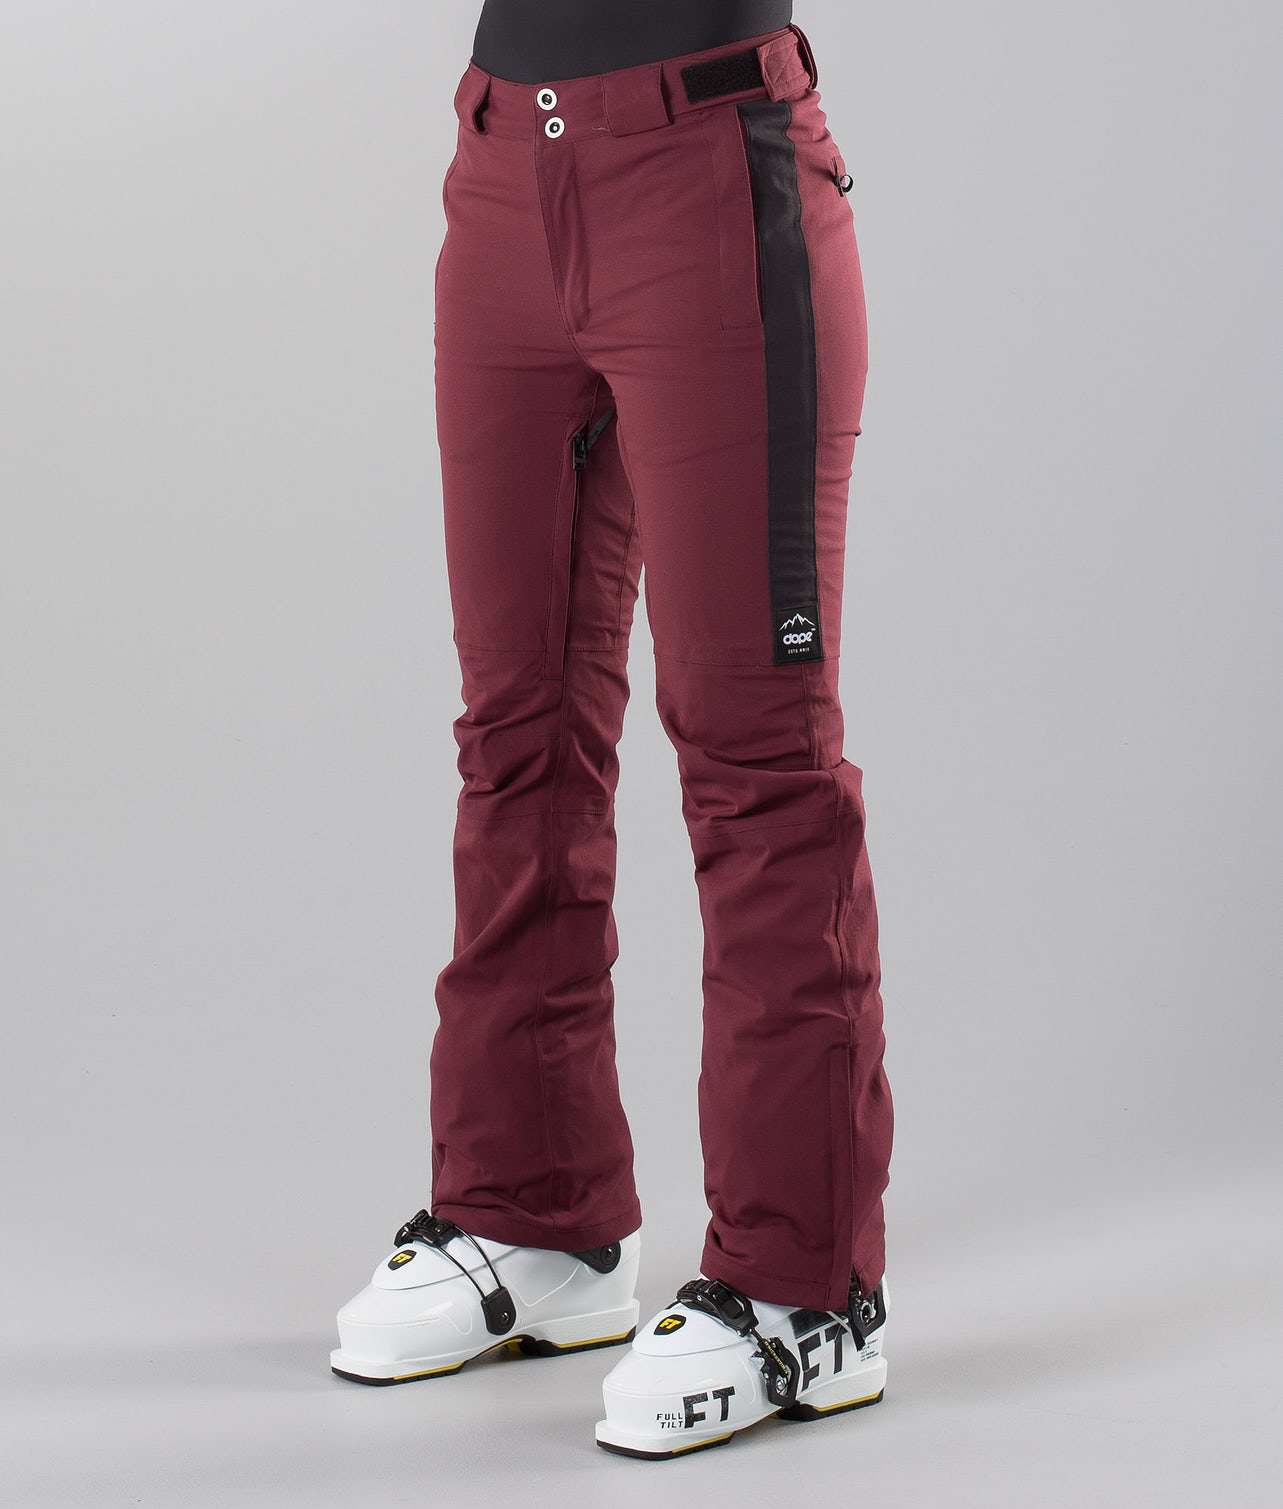 Buy Con 18 Ski Pants from Dope at Ridestore.com - Always free shipping, free returns and 30 days money back guarantee